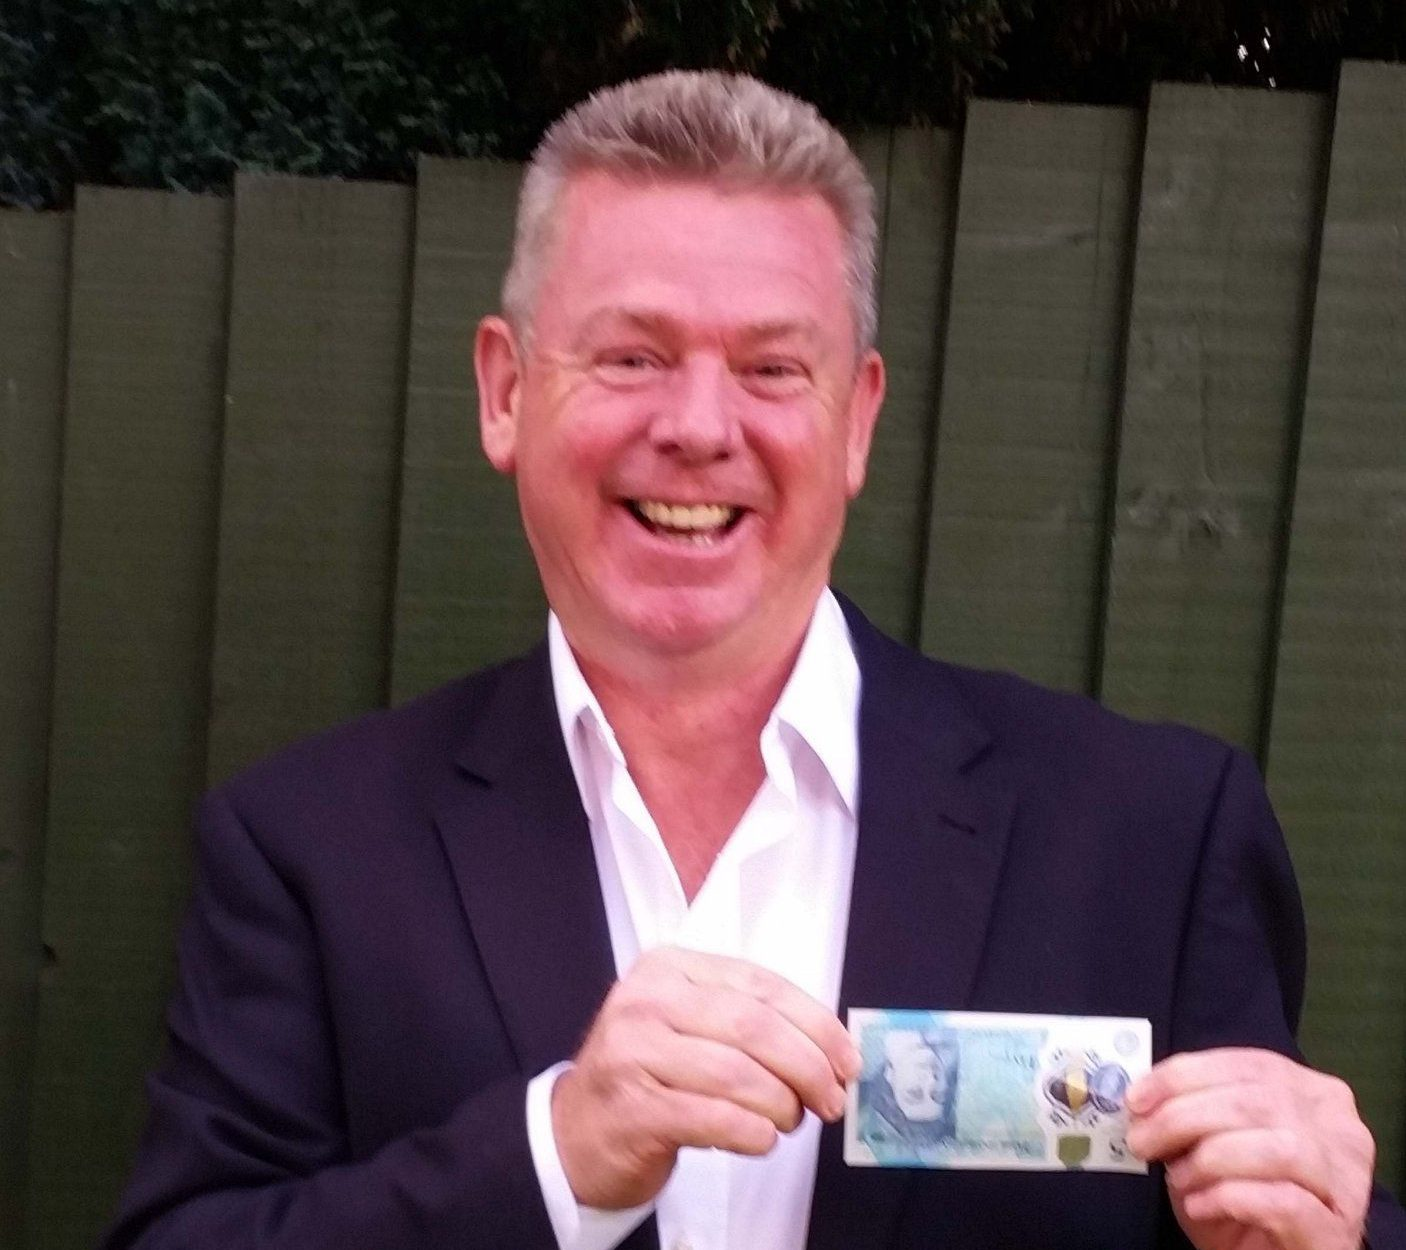 PIC FROM MERCURY PRESS (PICTURED: MIKE HARRIS, 54, WITH THE 'UPSIDE DOWN' FIVE POUND NOTE HE LISTED ON EBAY) A prankster who was perplexed by collectors paying thousands for new £5 notes listed one on eBay as ëa rare UPSIDE DOWN noteí ñ sparking a bidding war on the item that hit almost £66,000. Ex-Navy man Mike Harris, 54, said he had watched the new £5 notes hit ësilly pricesí as collectors scrabbled to get hold of unique bar codes. So Mike took a picture of a £5 he turned upside down and listed it on the popular auction site as a joke but was left stunned when the bids started pouring in and hit £65,551 with 68 bids. His listing claimed to be verified for its authenticity by the Department of Upside-down Printed English Denominations (DUPED). SEE MERCURY COPY